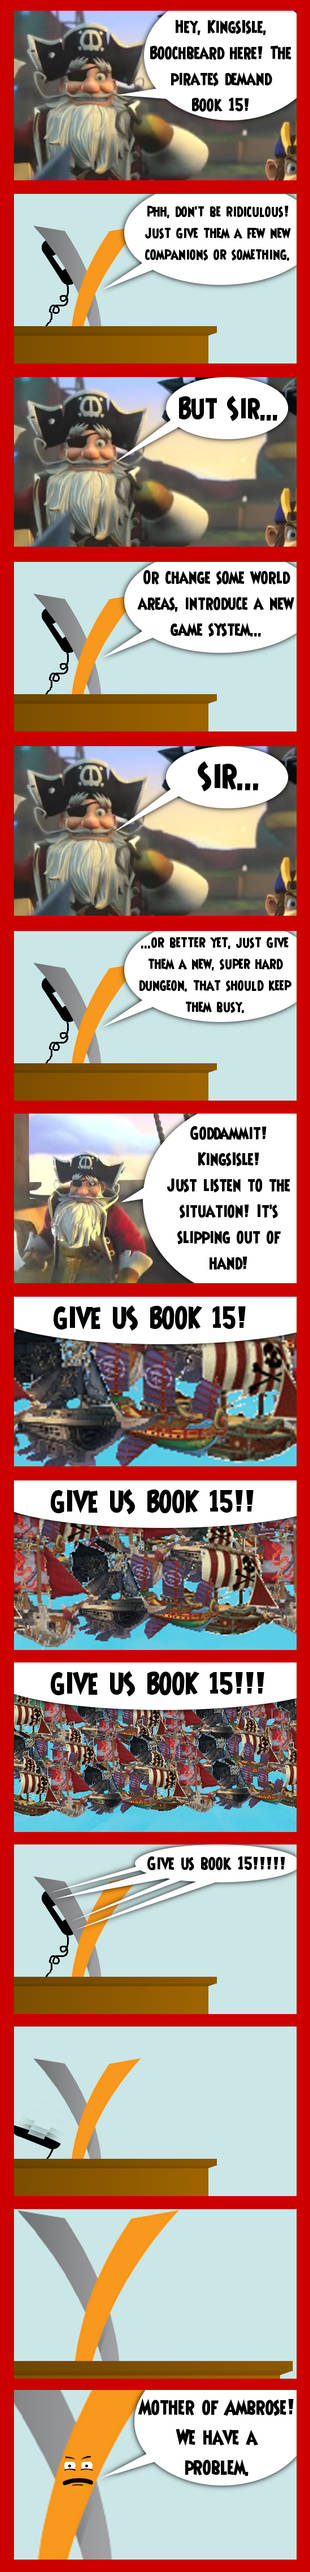 Pirate101: Book 15 by christophr1 on DeviantArt